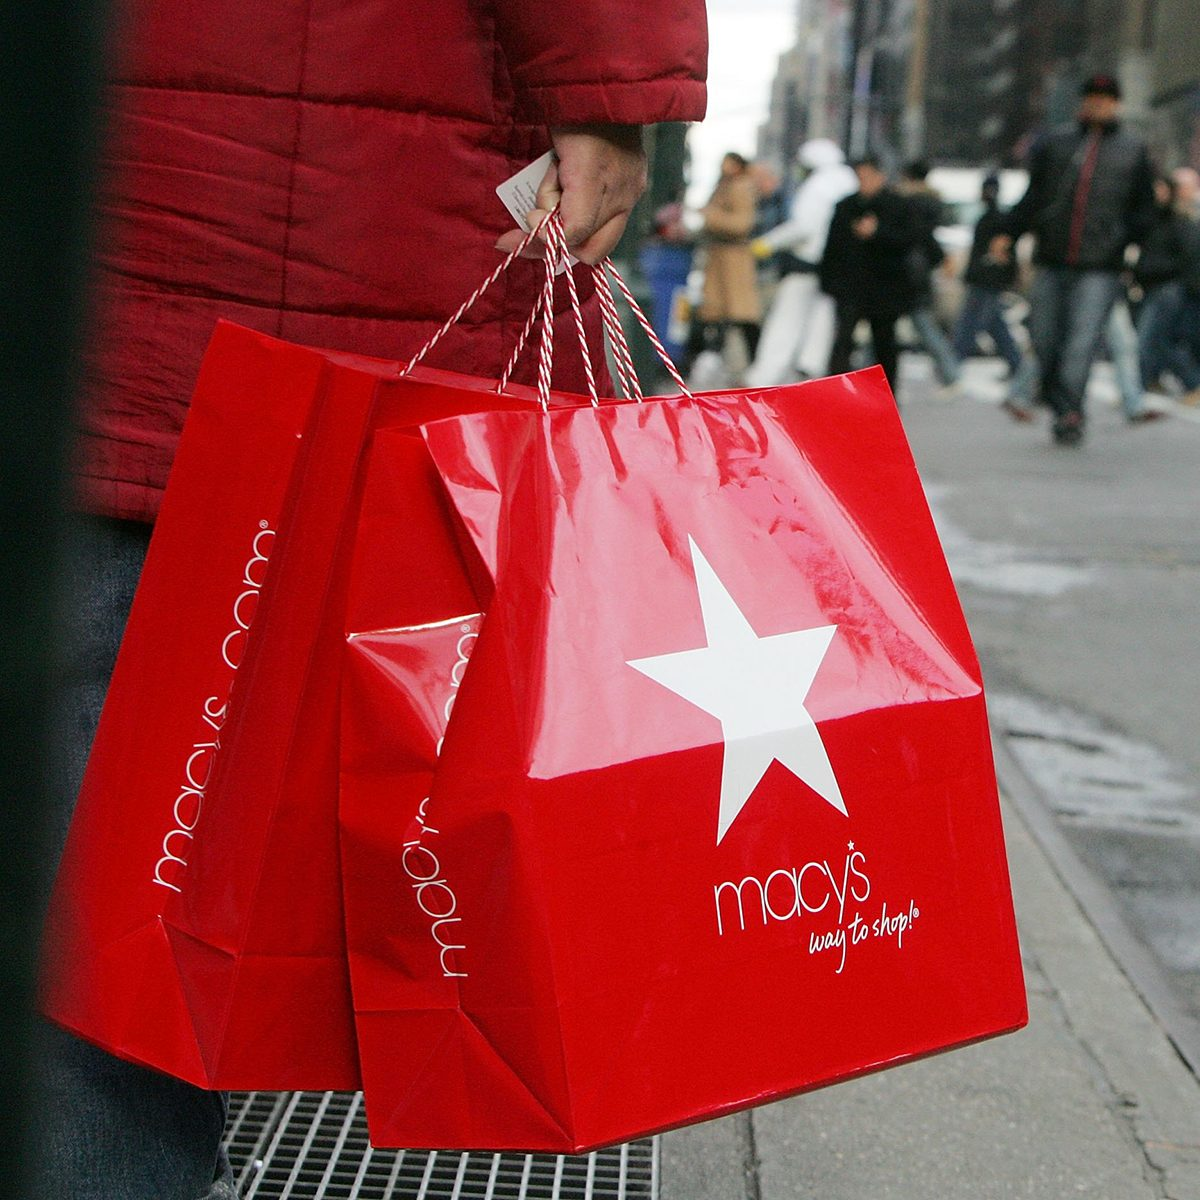 NEW YORK - DECEMBER 27: A post-Christmas shopper holds Macy's bags as other shoppers cross Seventh Avenue December 27, 2006 in New York City. Retailers are hoping that after-Christmas shoppers will help them regroup after a somewhat disappointing holiday shopping season thus far. (Photo by Mario Tama/Getty Images)